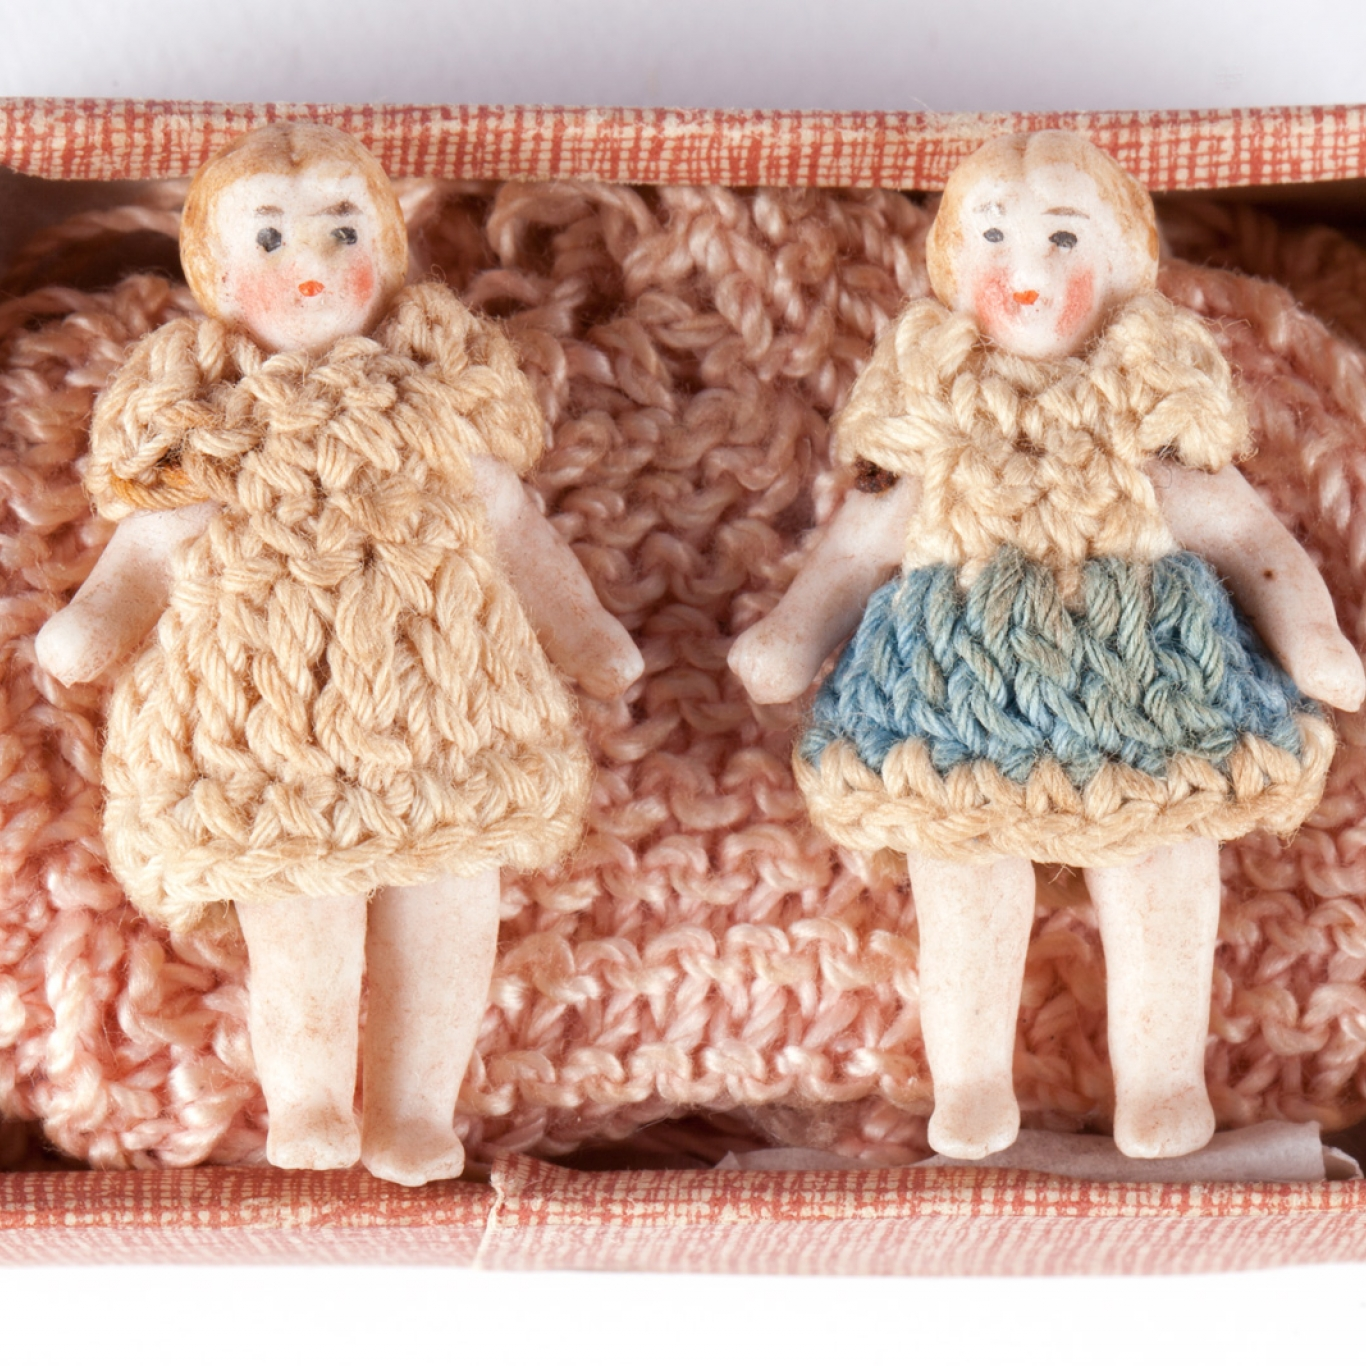 Two female dolls wearing crocheted clothing